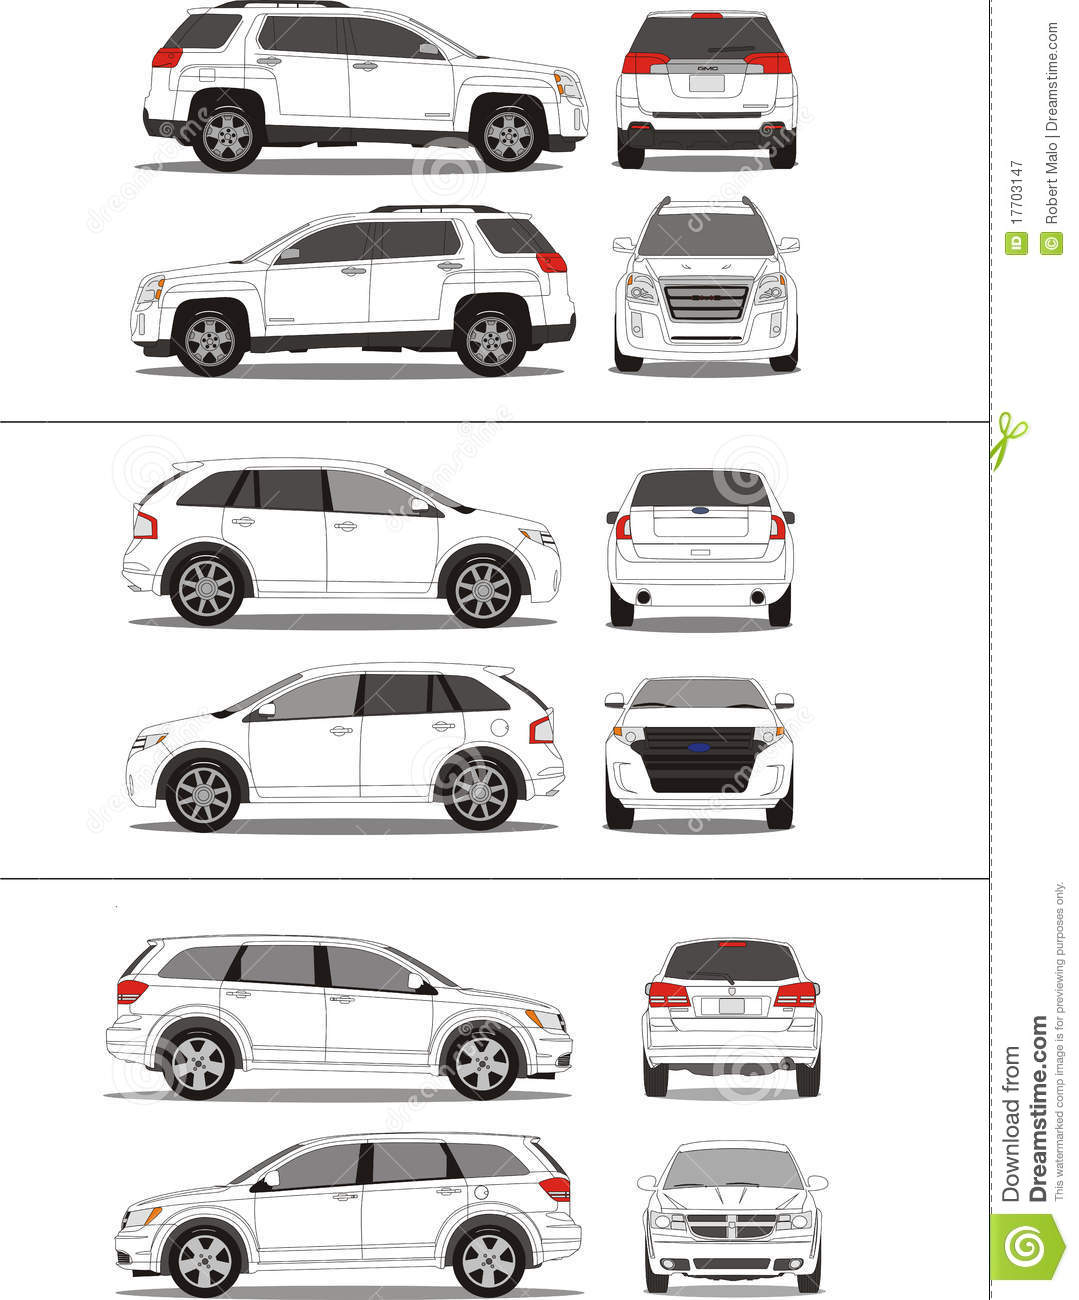 American Suv Vehicle Outline Royalty Free Stock Photography